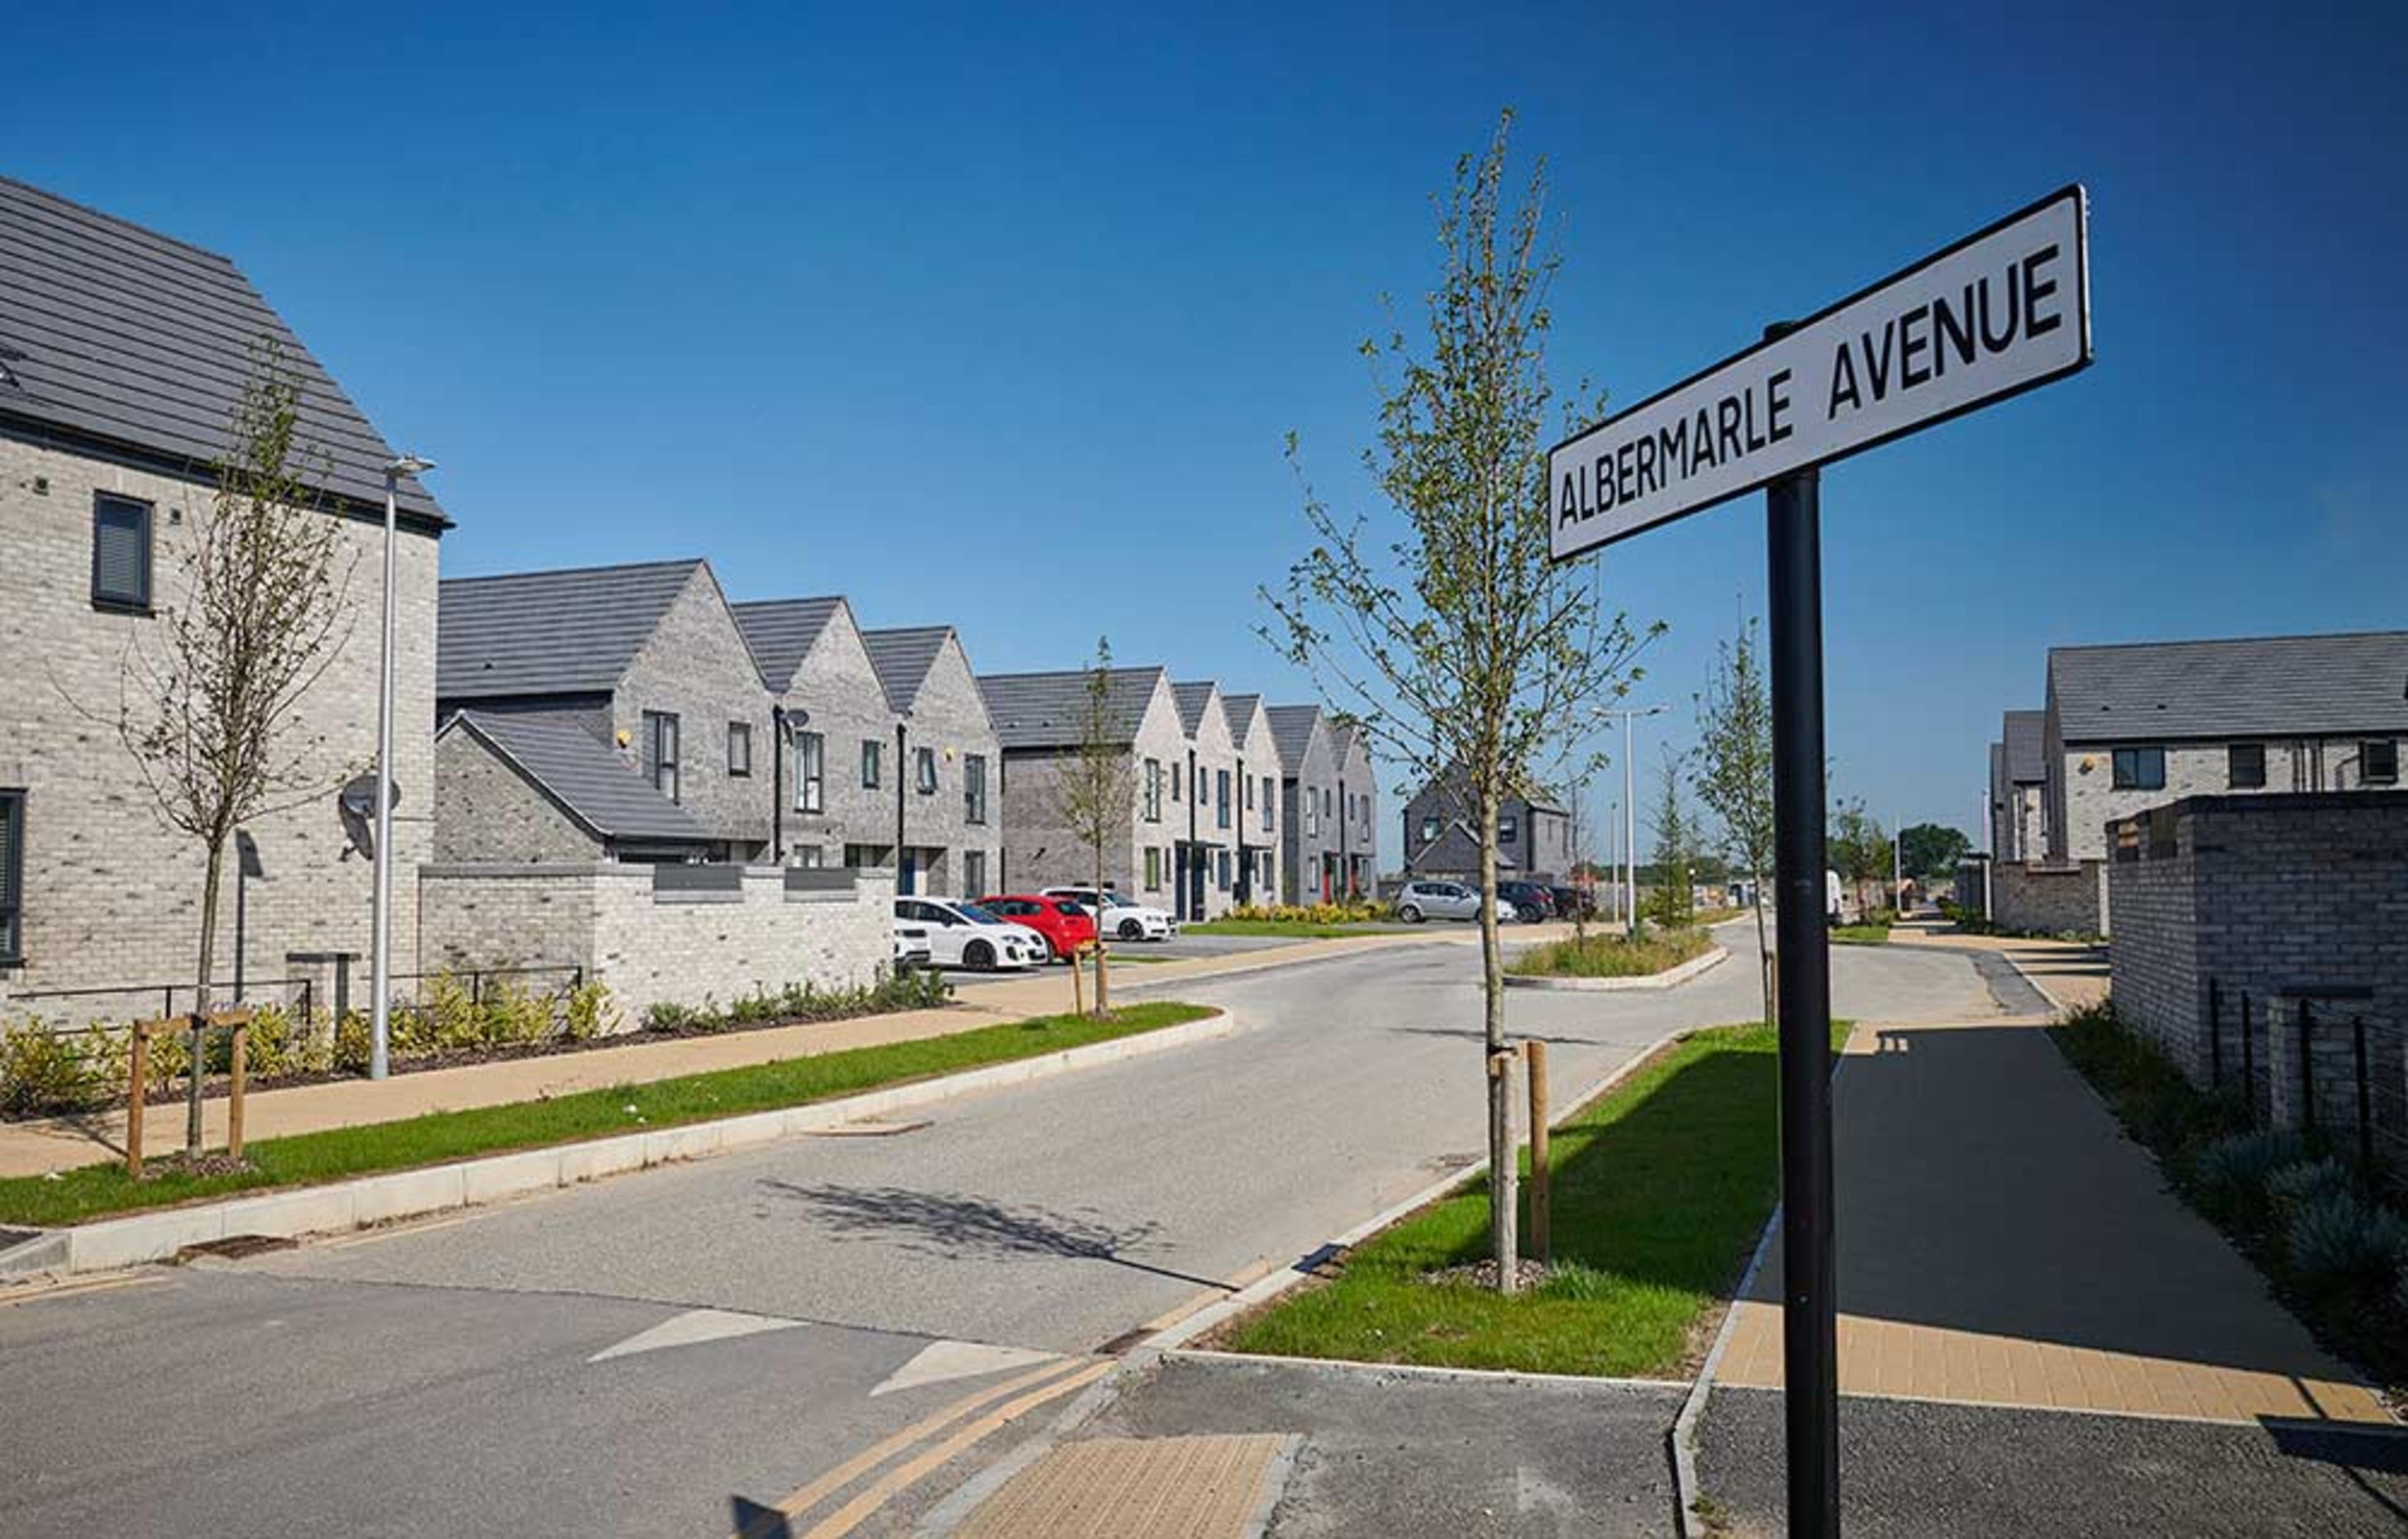 Street view of new-build houses on Albermarle Avenue at Meaux Rise